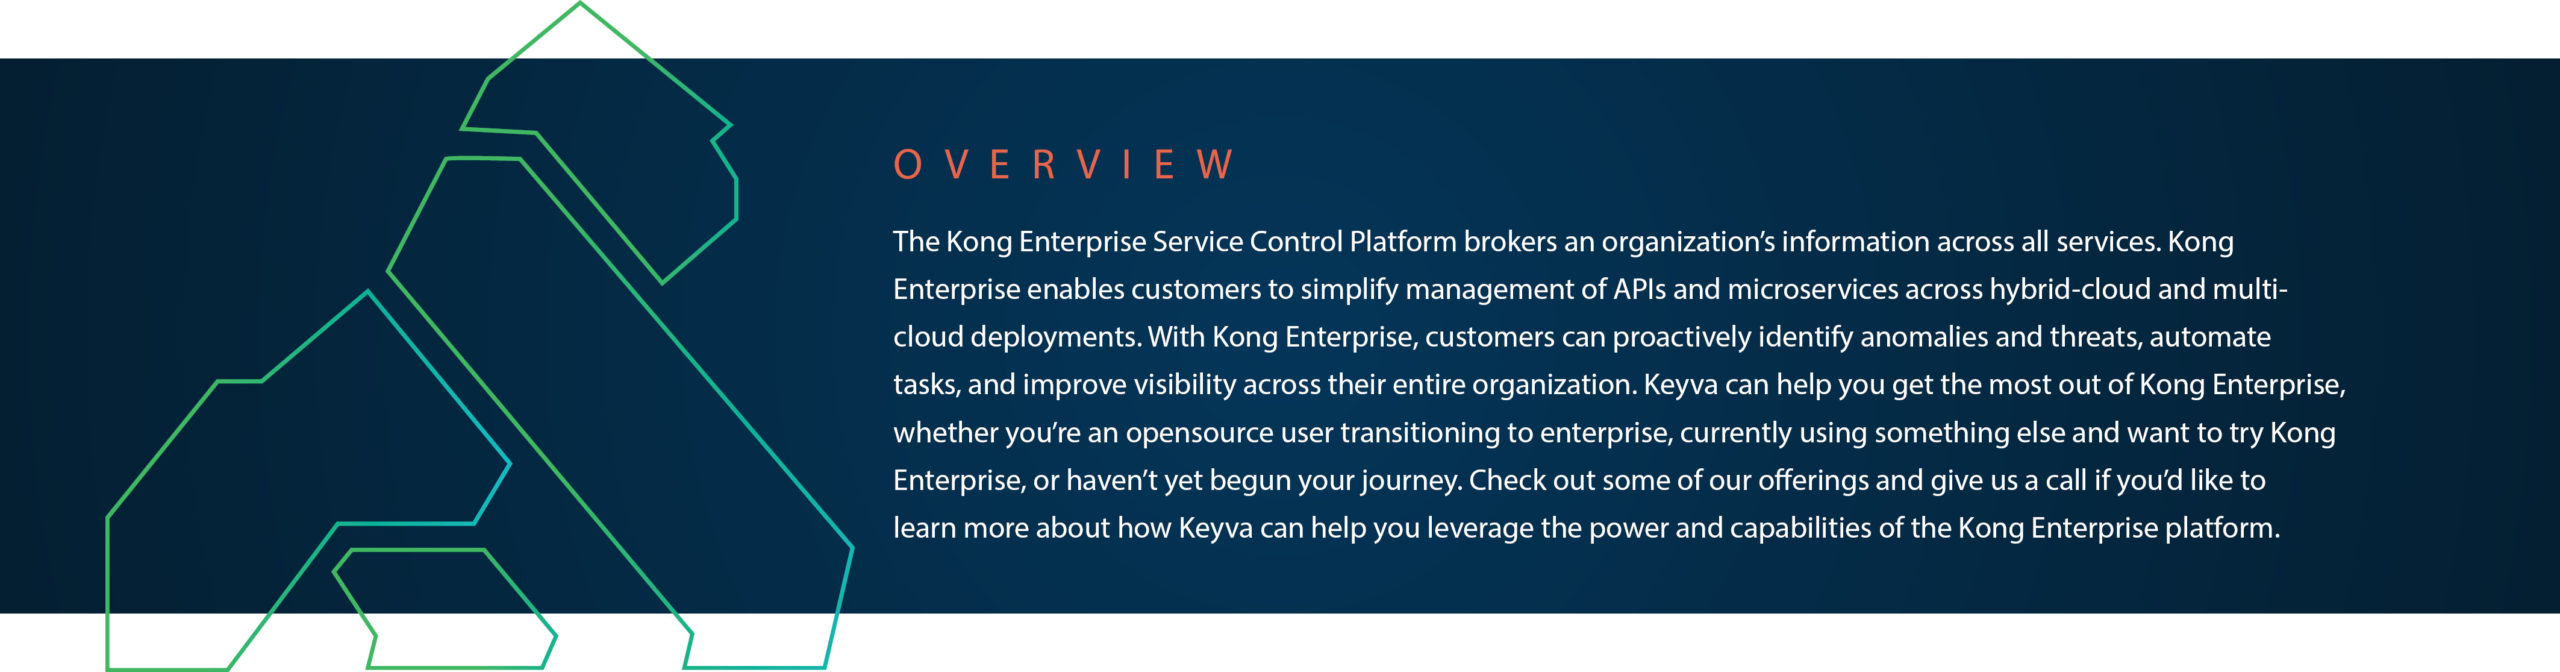 The Kong Enterprise Service Control Platform brokers an organization's information across all services. It enables customers to simplify management of APIs and microservices across hybrid-cloud and multi-cloud deployments. Customers can proactively identify anomalies and threats, automate tasks, and improve visibility across their entire organization. Keyva can help you get the most out of Kong Enterprise, whether you're an opensource user transitioning to enterprise, currently using something else and want to try it or haven't yet begun your journey. Check out some of our offerings and give us a call if you'd like to learn more about how Keyva can help you leverage the power and capabilities of the platform.